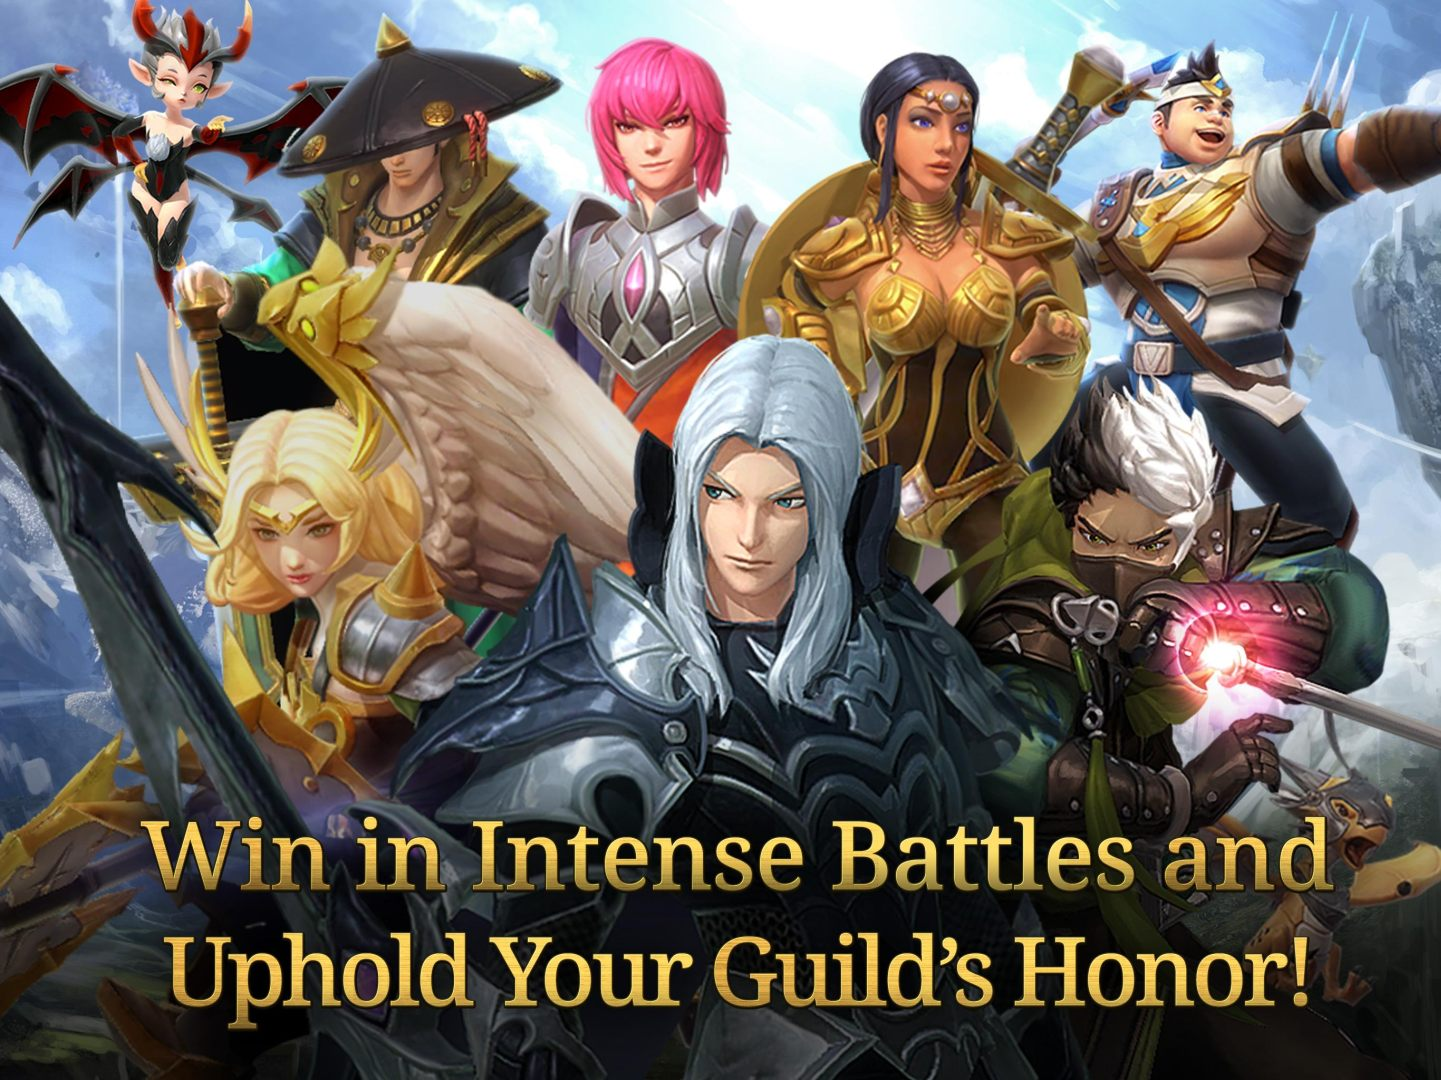 The War of Genesis: Battle of Antaria 1253 APK Download